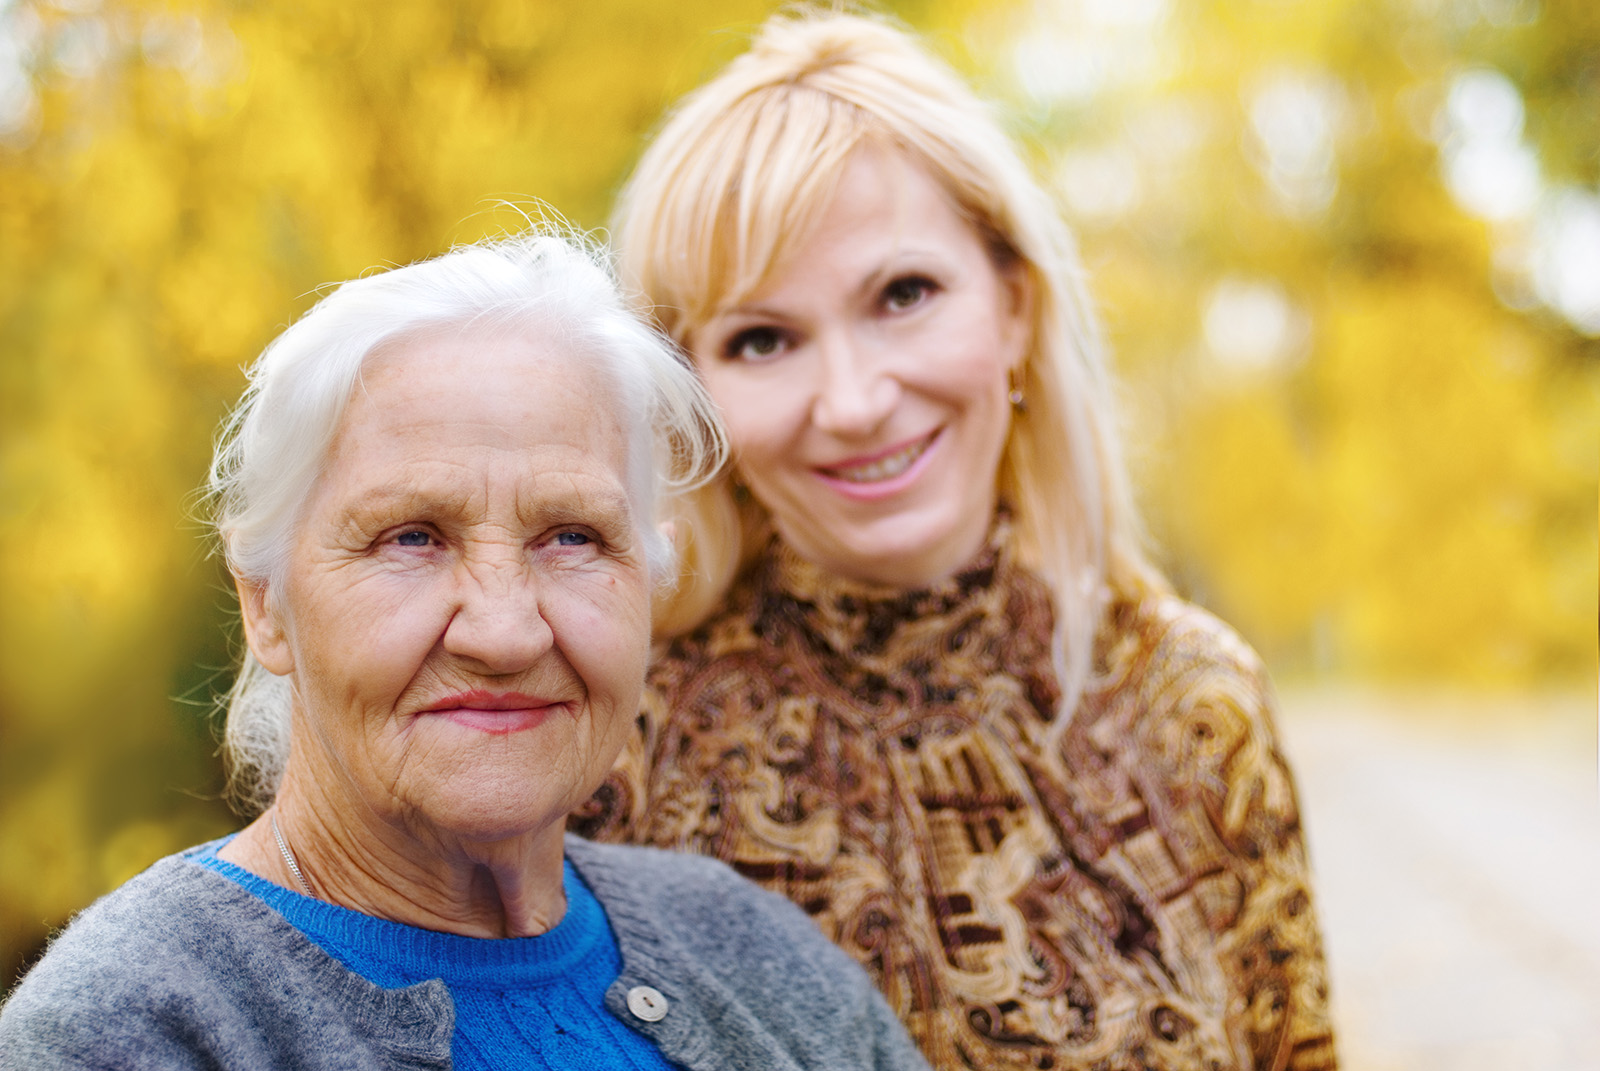 Elderly woman with younger woman in the background